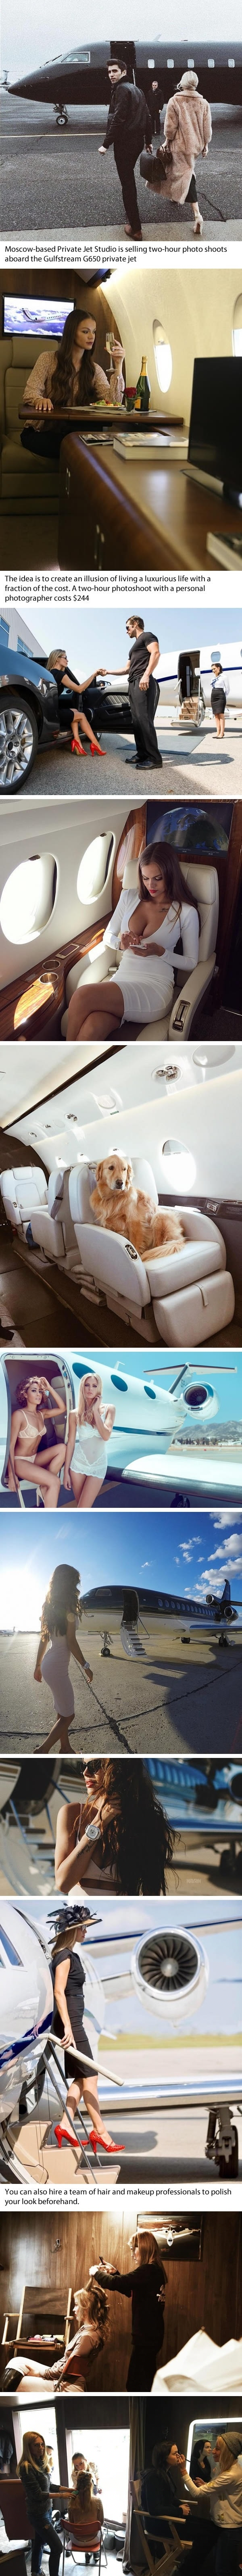 Russian company lets you fool your followers by renting out private jets for photoshoots